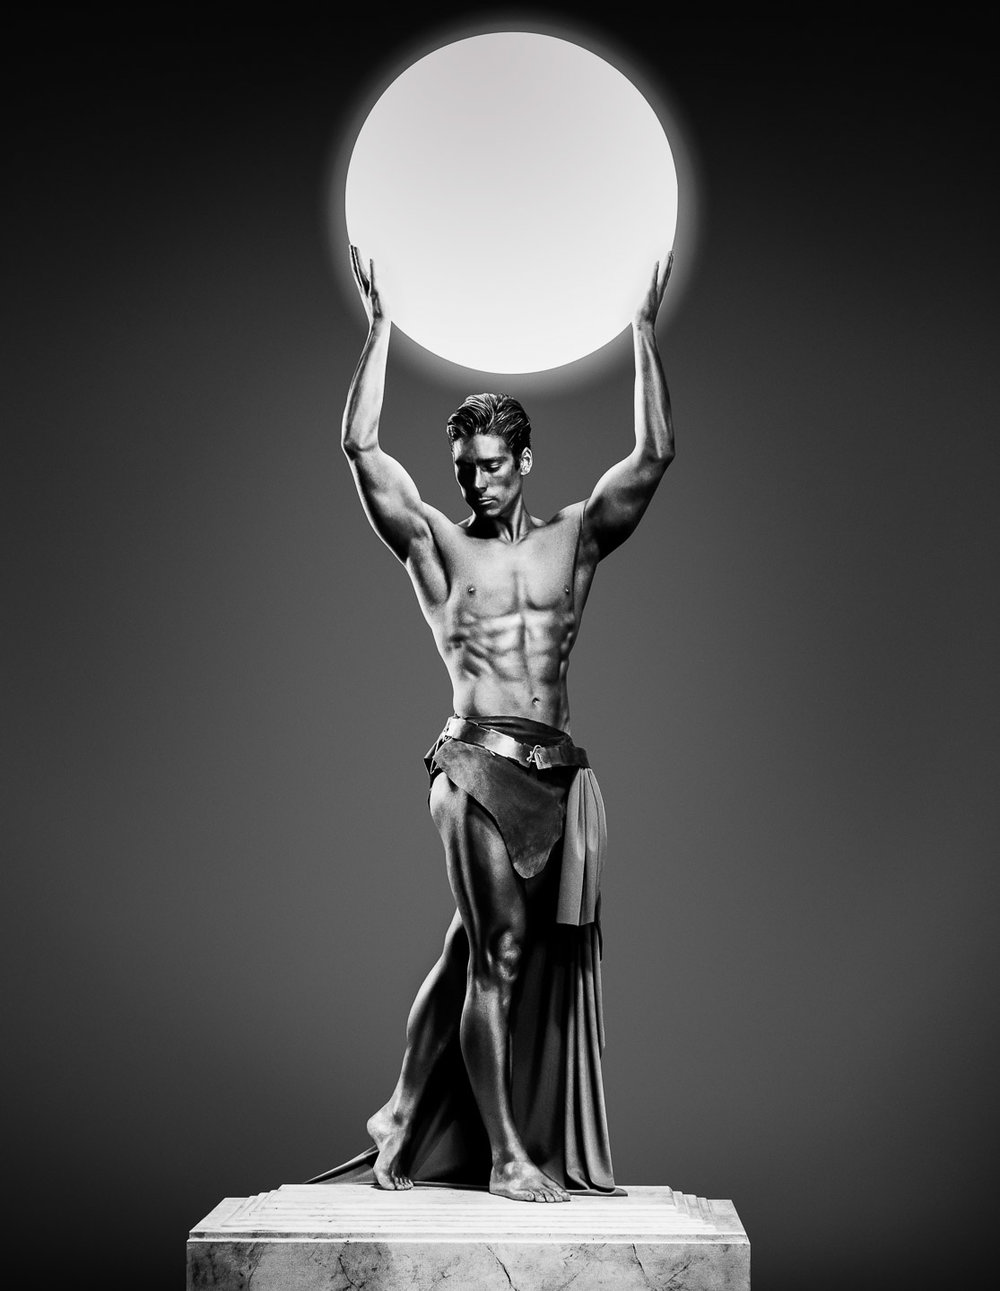 Tim Platt - iconic image of Man holding ball in plinth